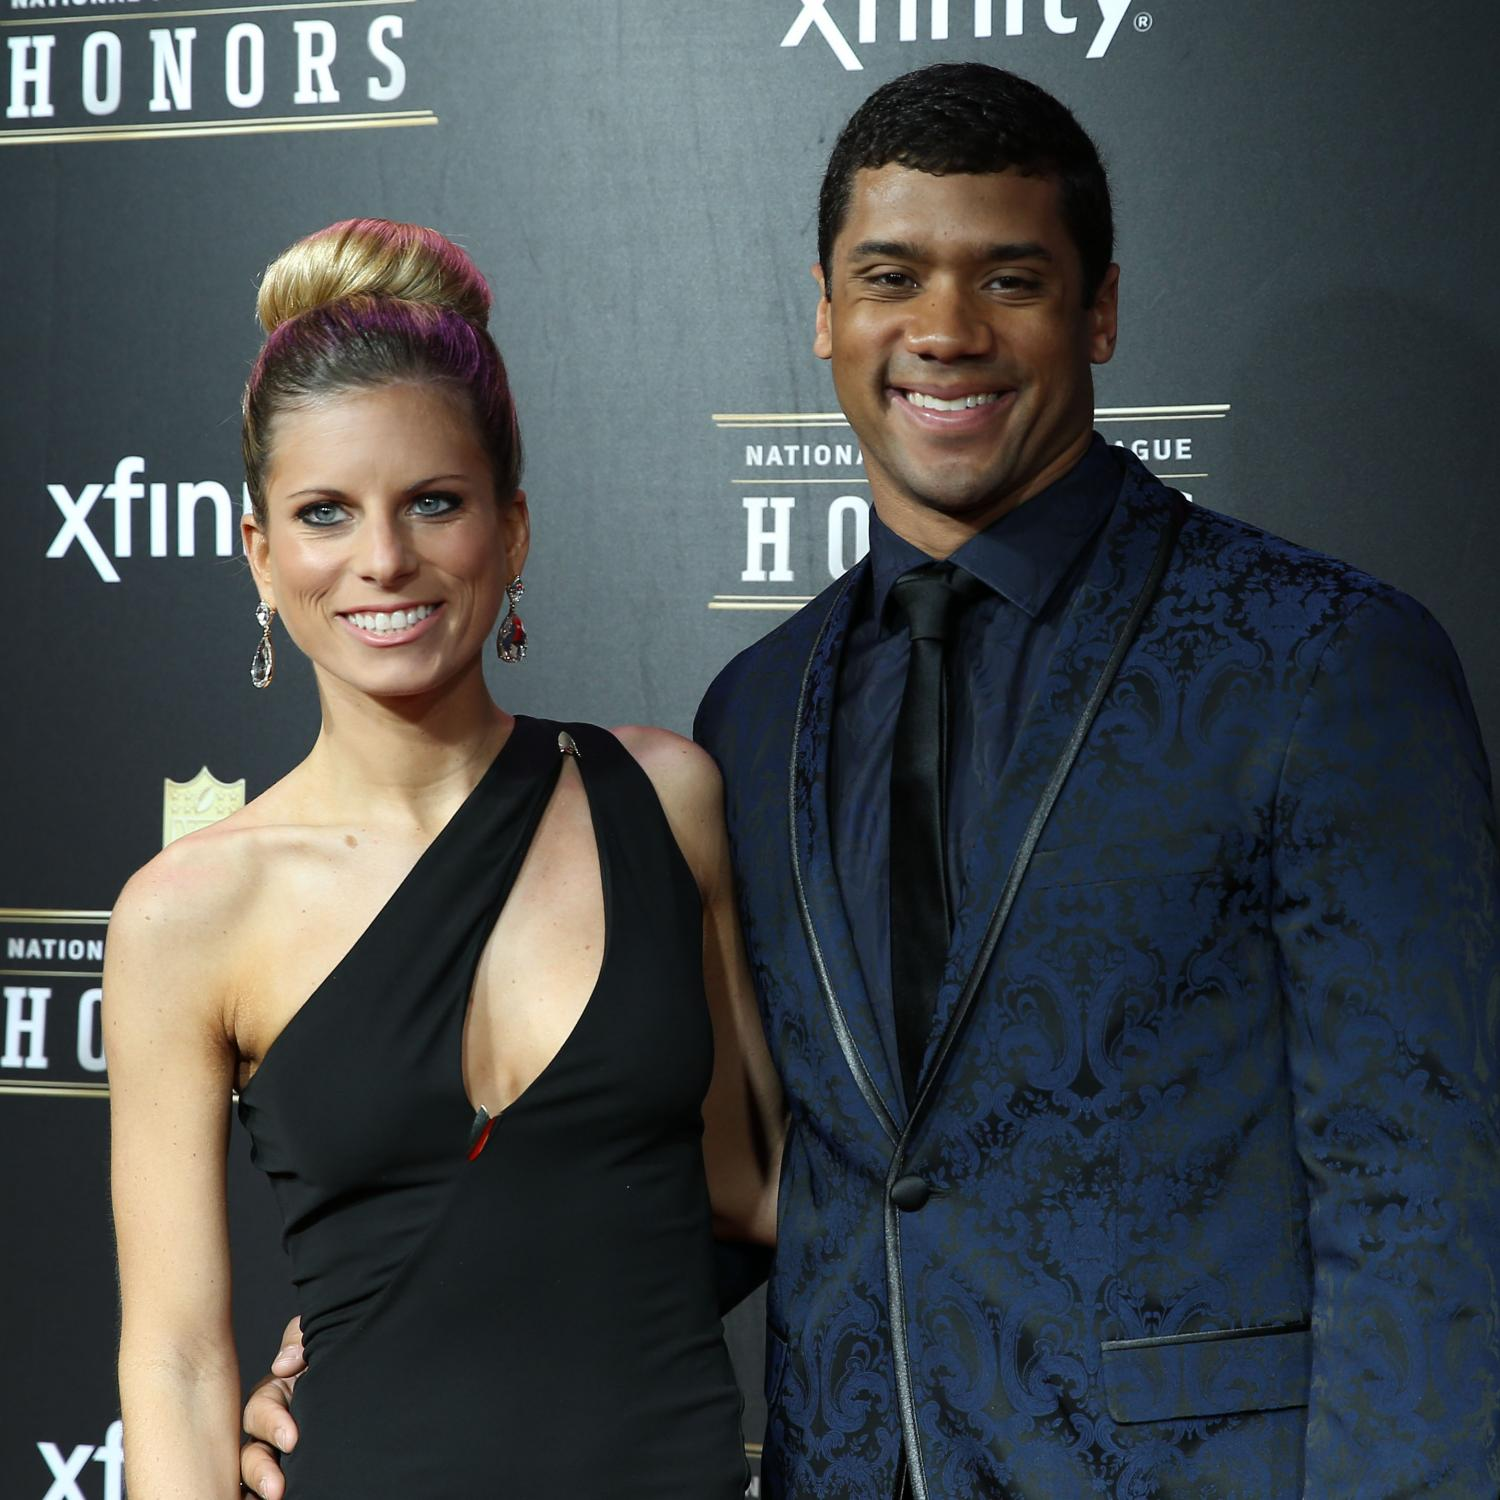 After Abstaining Until Marriage, NFL Star Russell Wilson